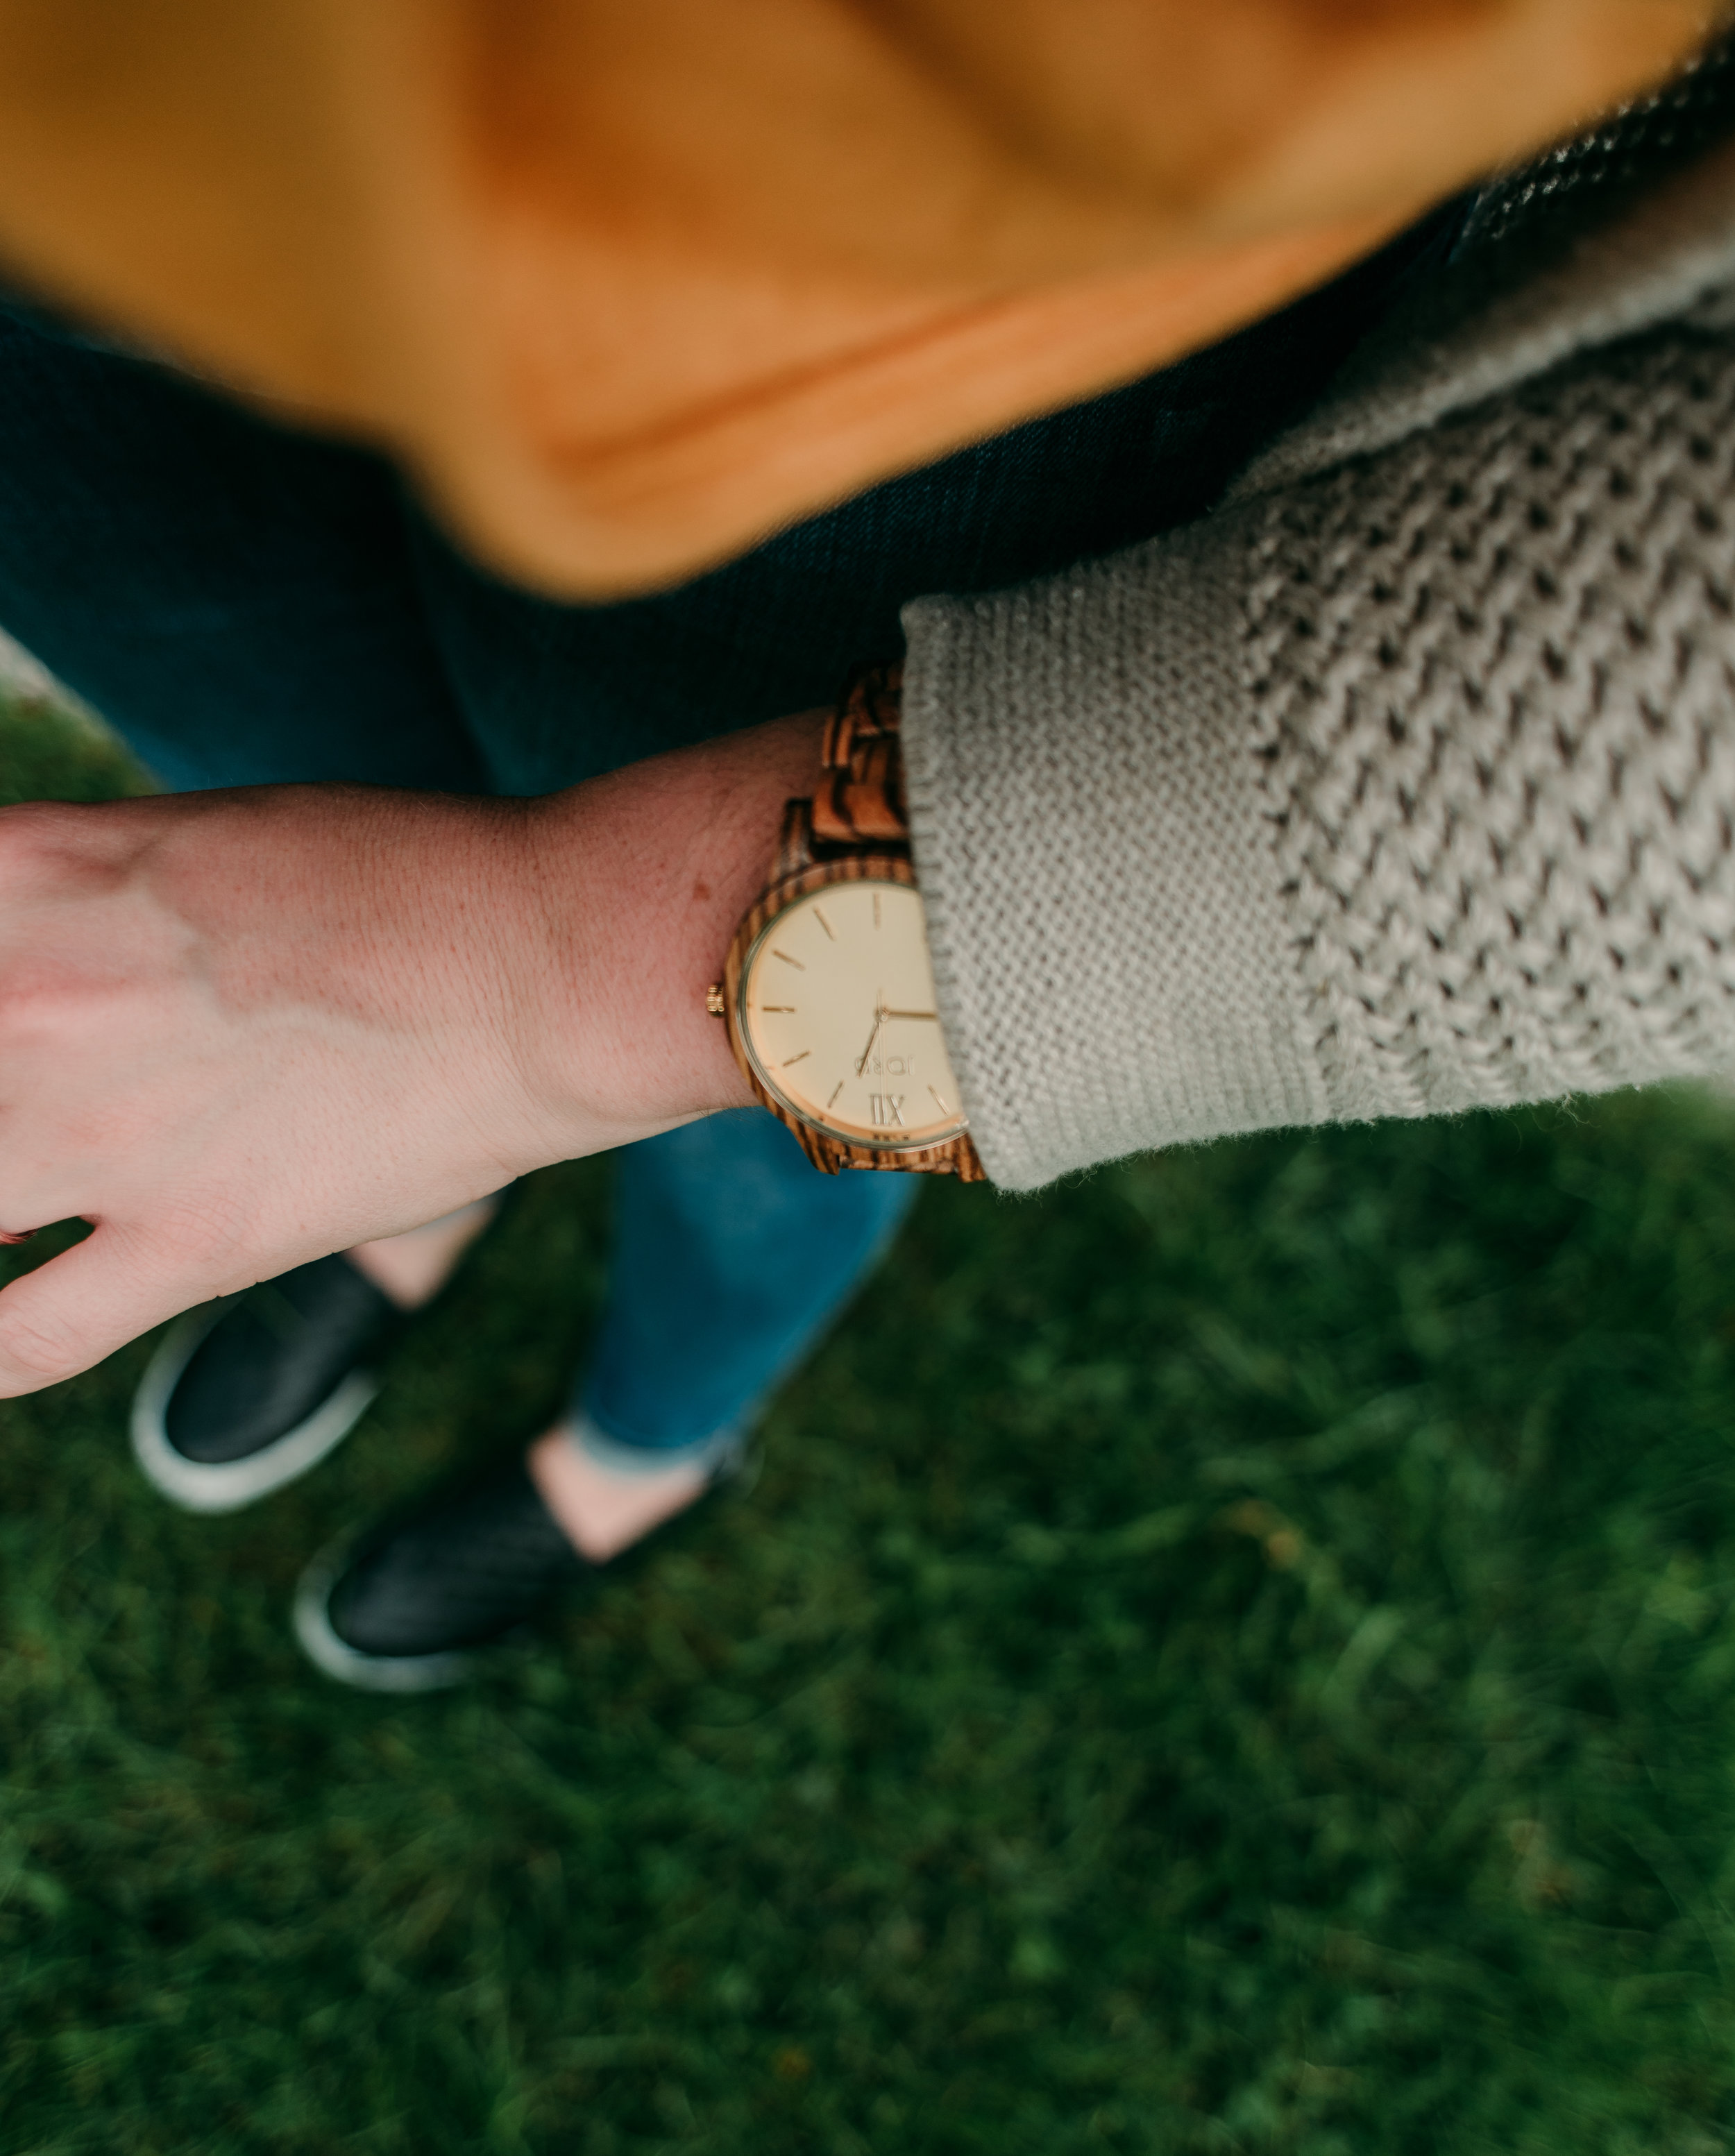 JORD-WOODEN-WATCH-GIVEAWAY-KENOSHA-WISCONSIN-CHICAGO-LISHMARIEPHOTO-WINNER